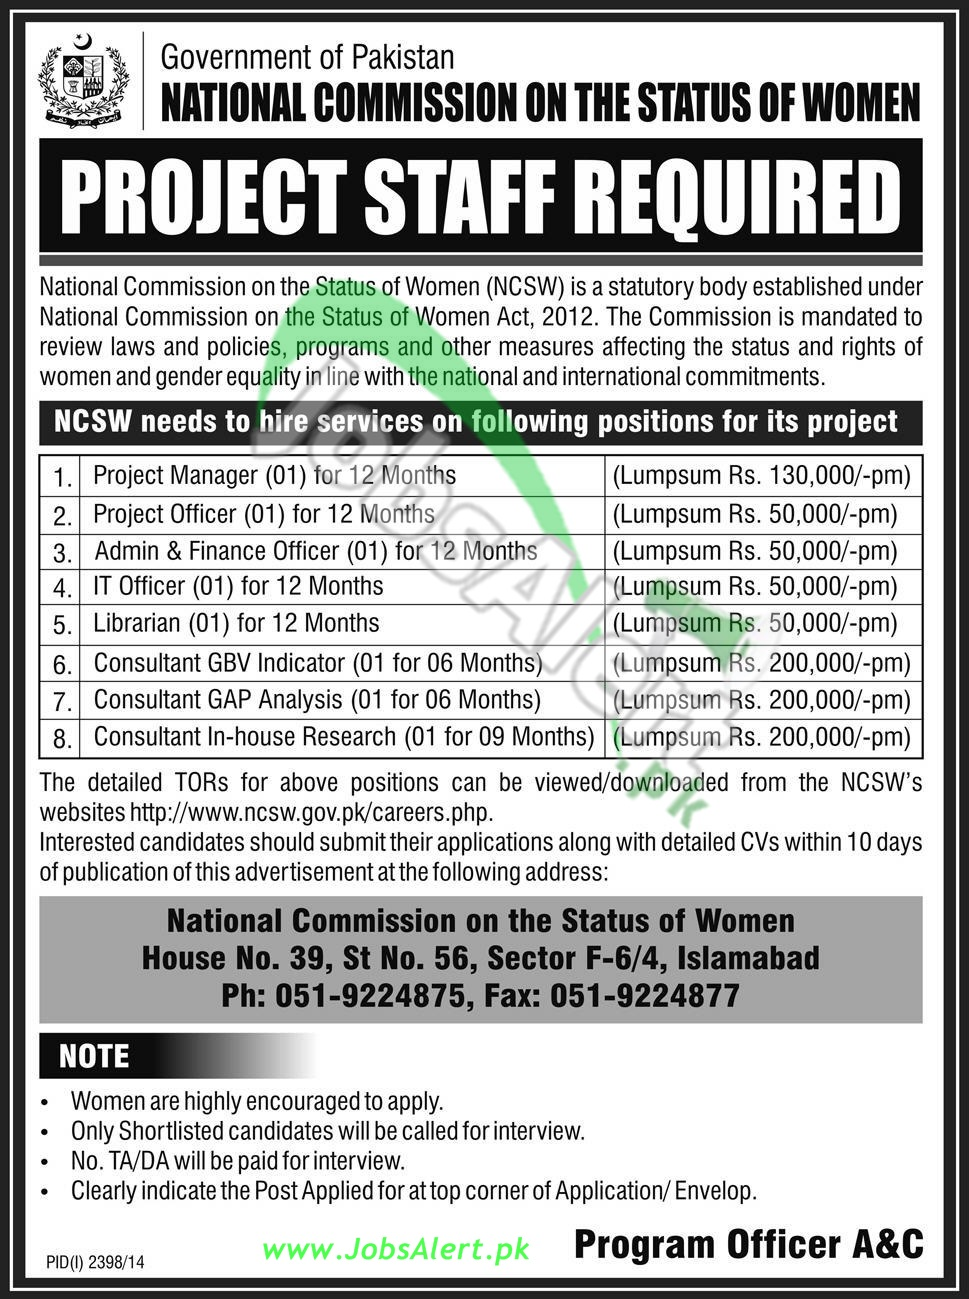 National Commission on the Status of Women (NCSW)